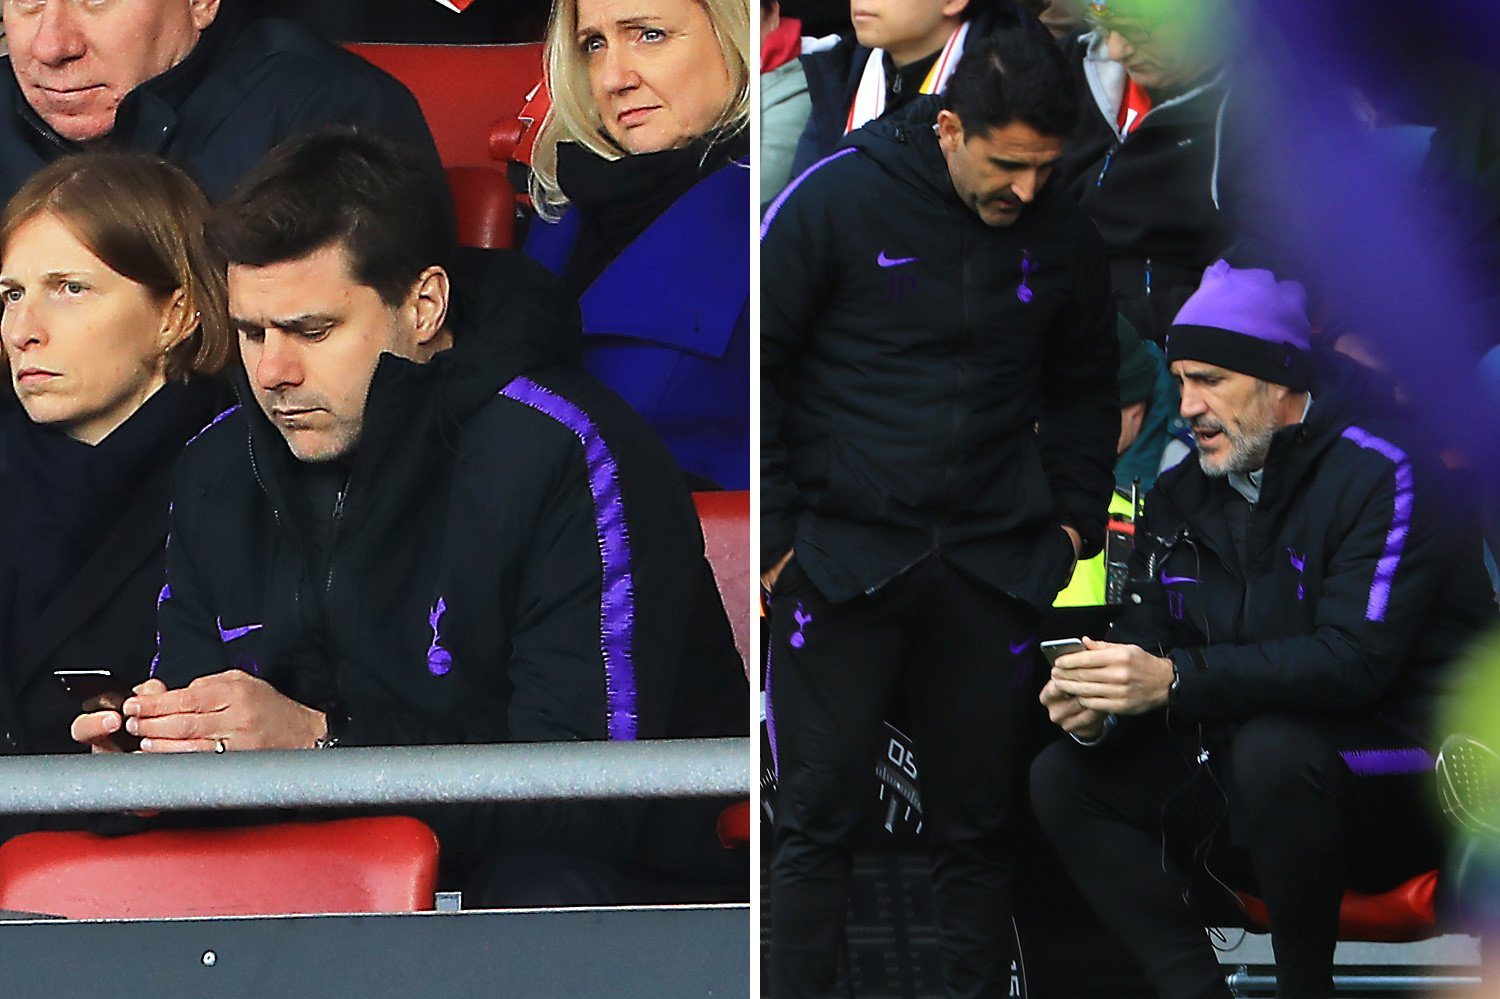 Desperate Pochettino texts and phones Spurs bench as he can only watch from stands as team collapses to Southampton